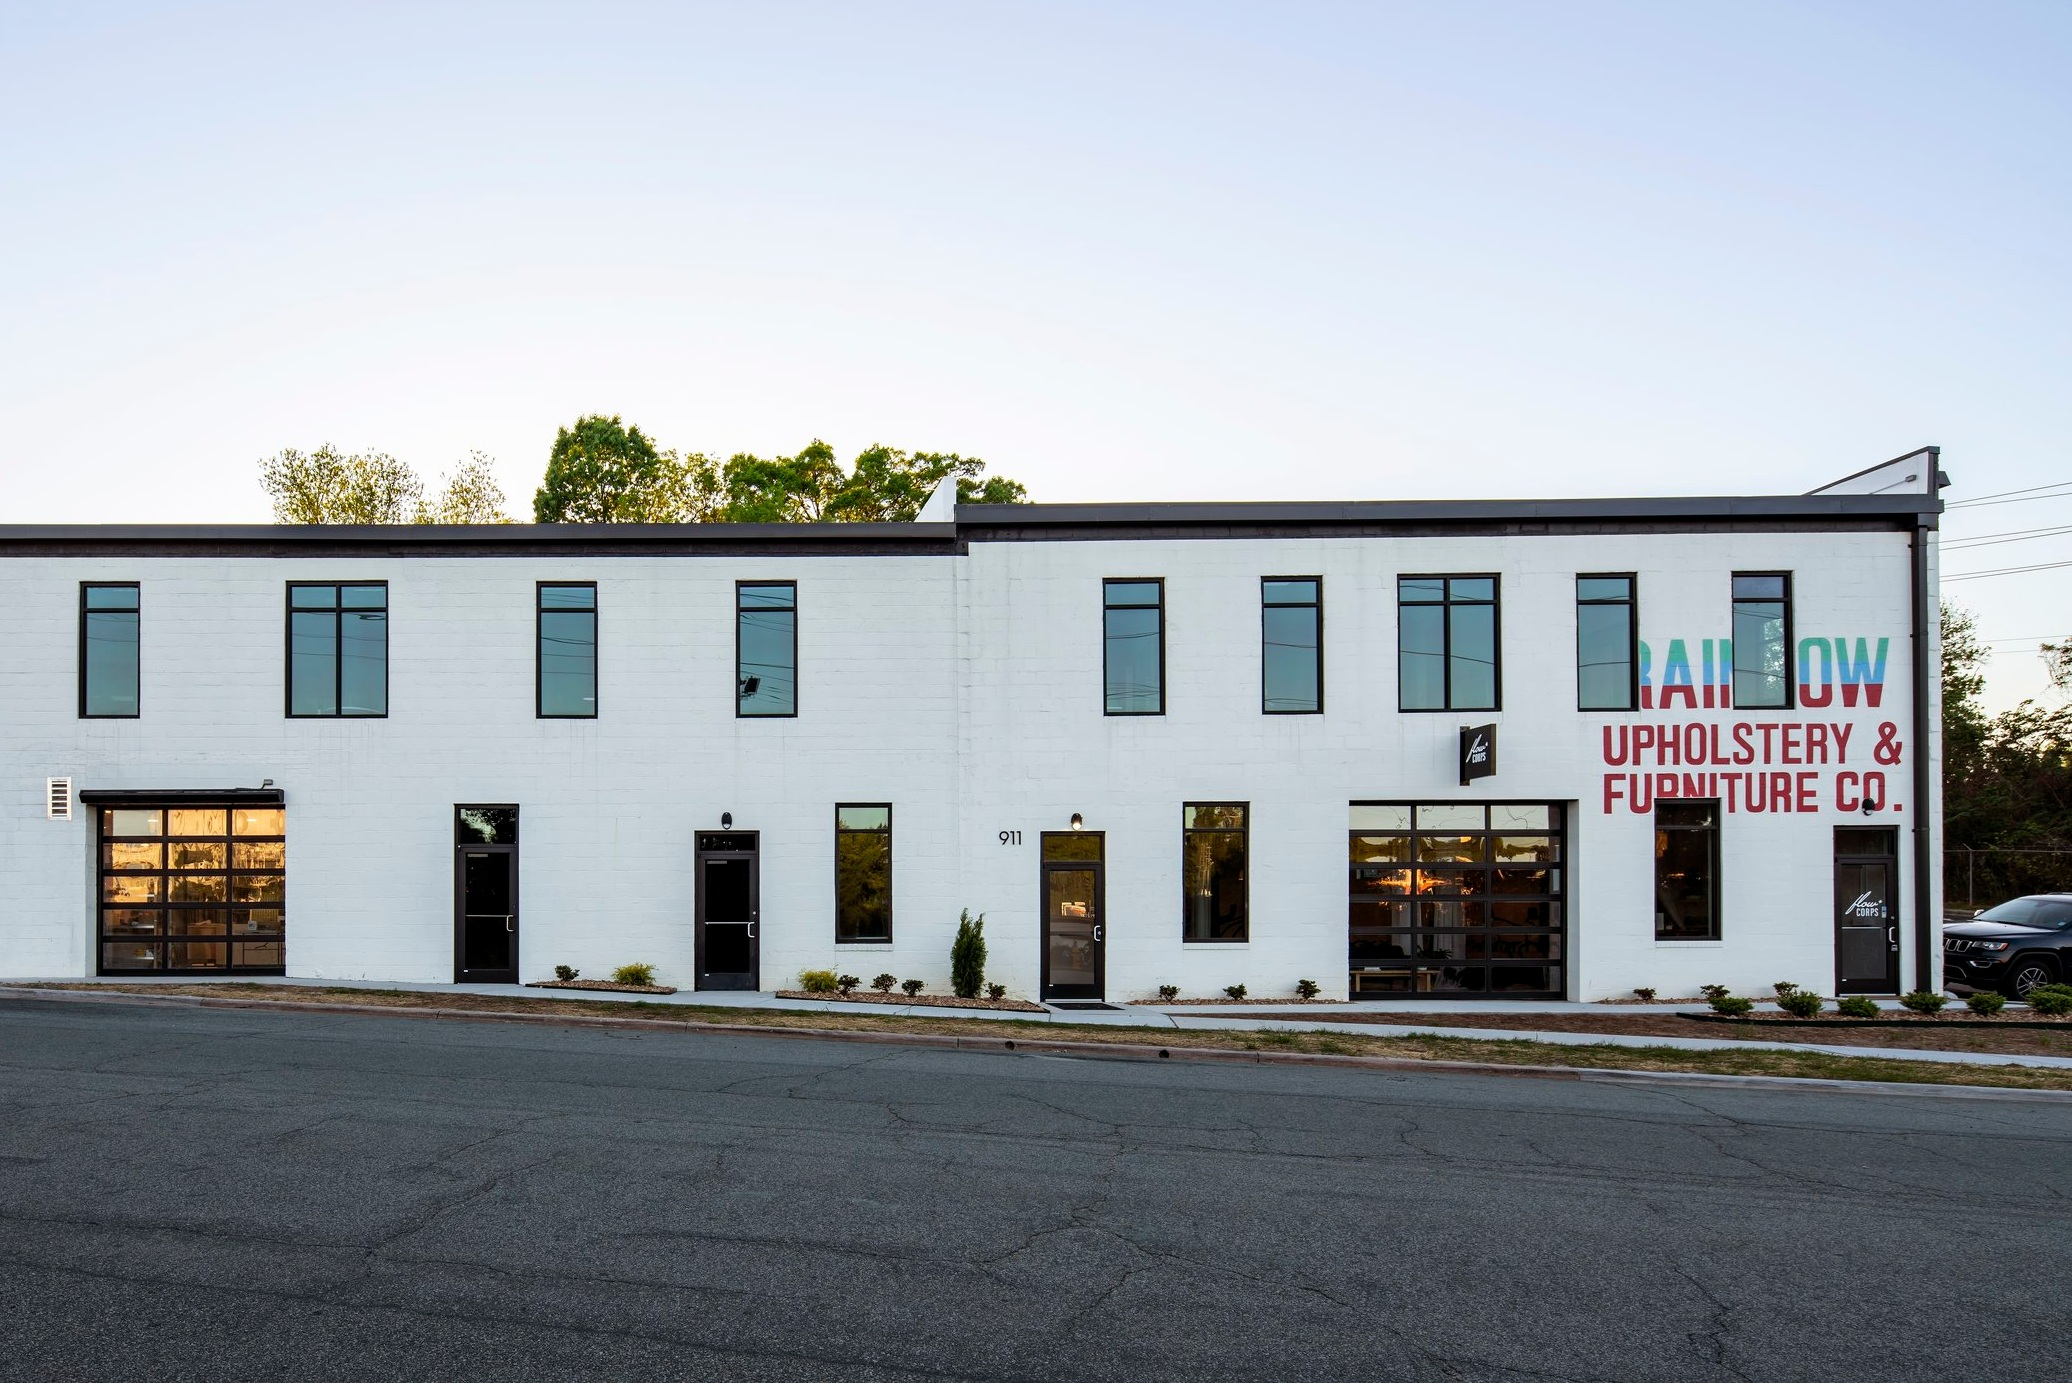 An old building gets a new life and Riley-Lewis completes upfits for new tenants